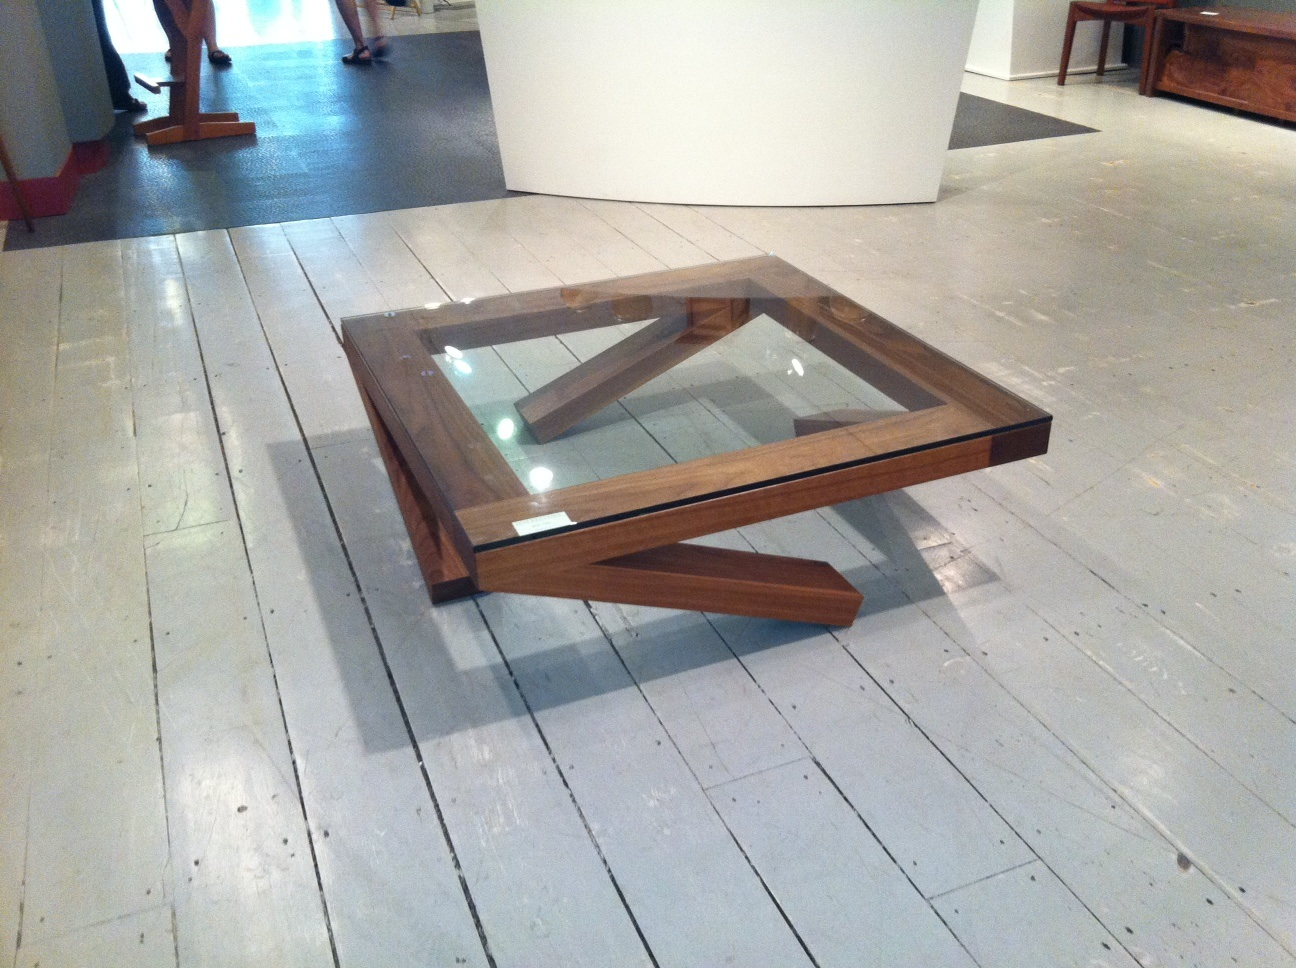 Floating Coffee Table Shoes And Other Stuff I Want Just Sayin